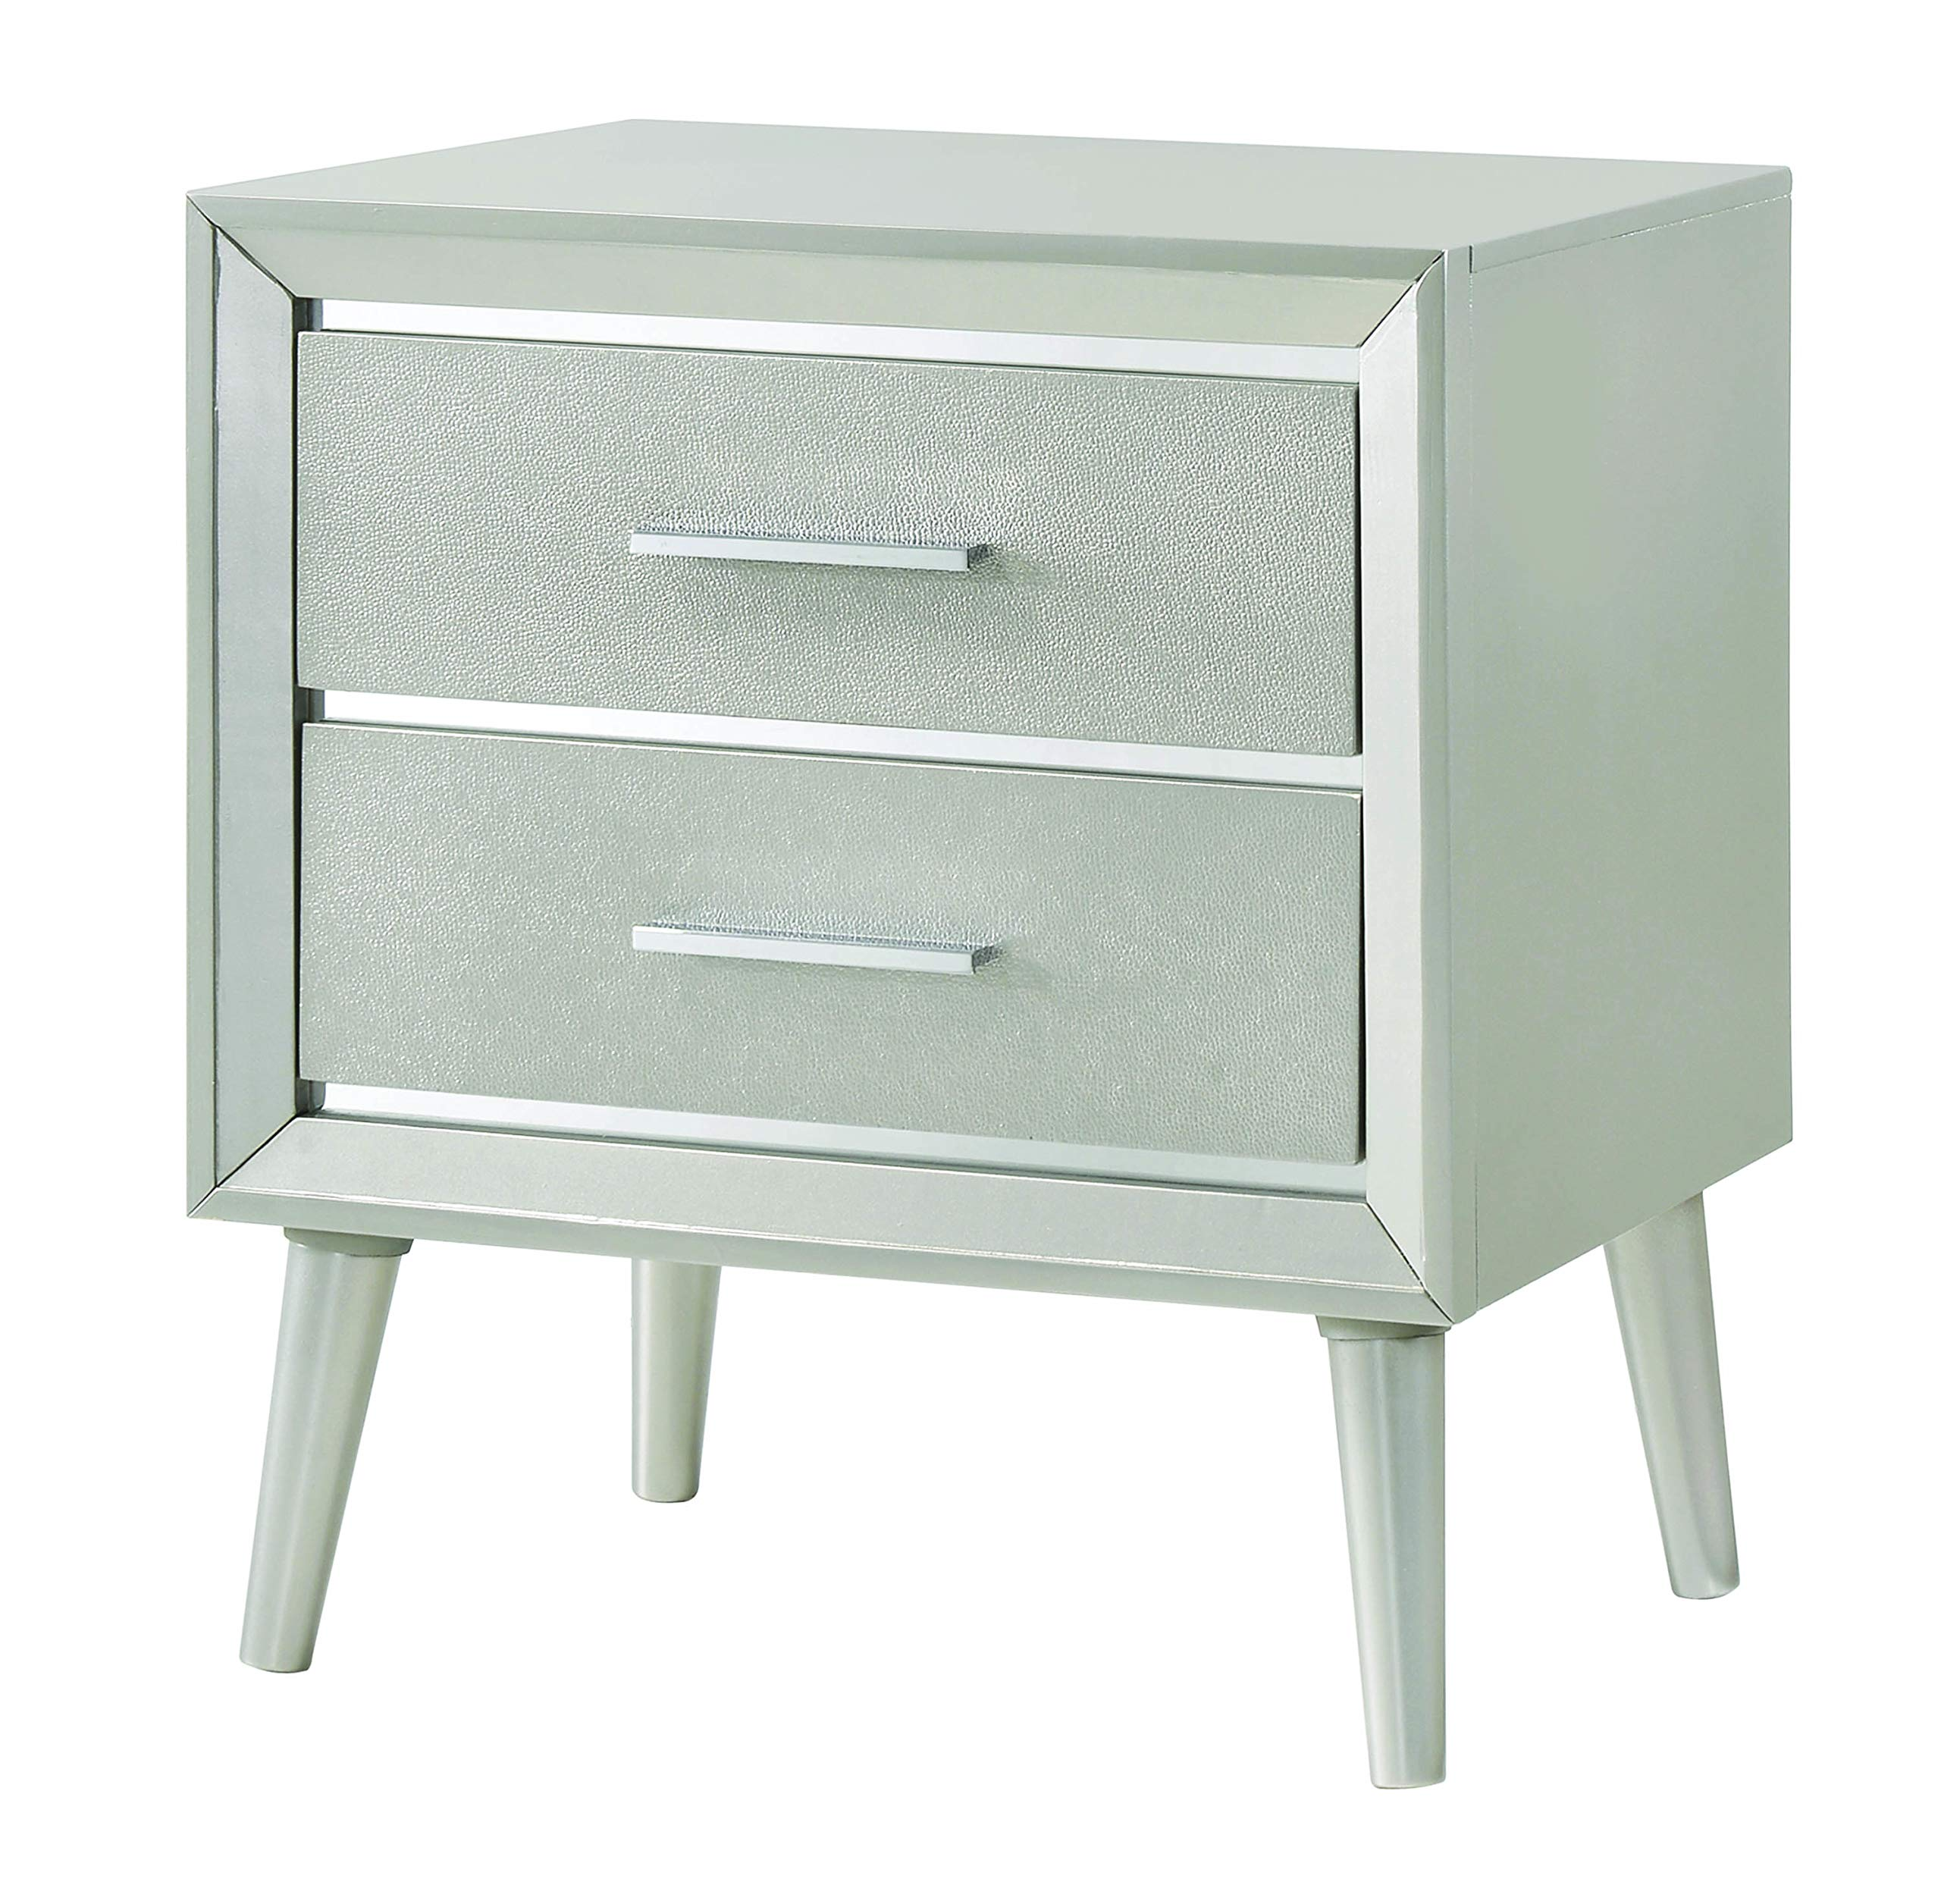 Coaster Ramon Mid-Century Modern Metallic Sterling Nightstand 222702 by Coaster Home Furnishings